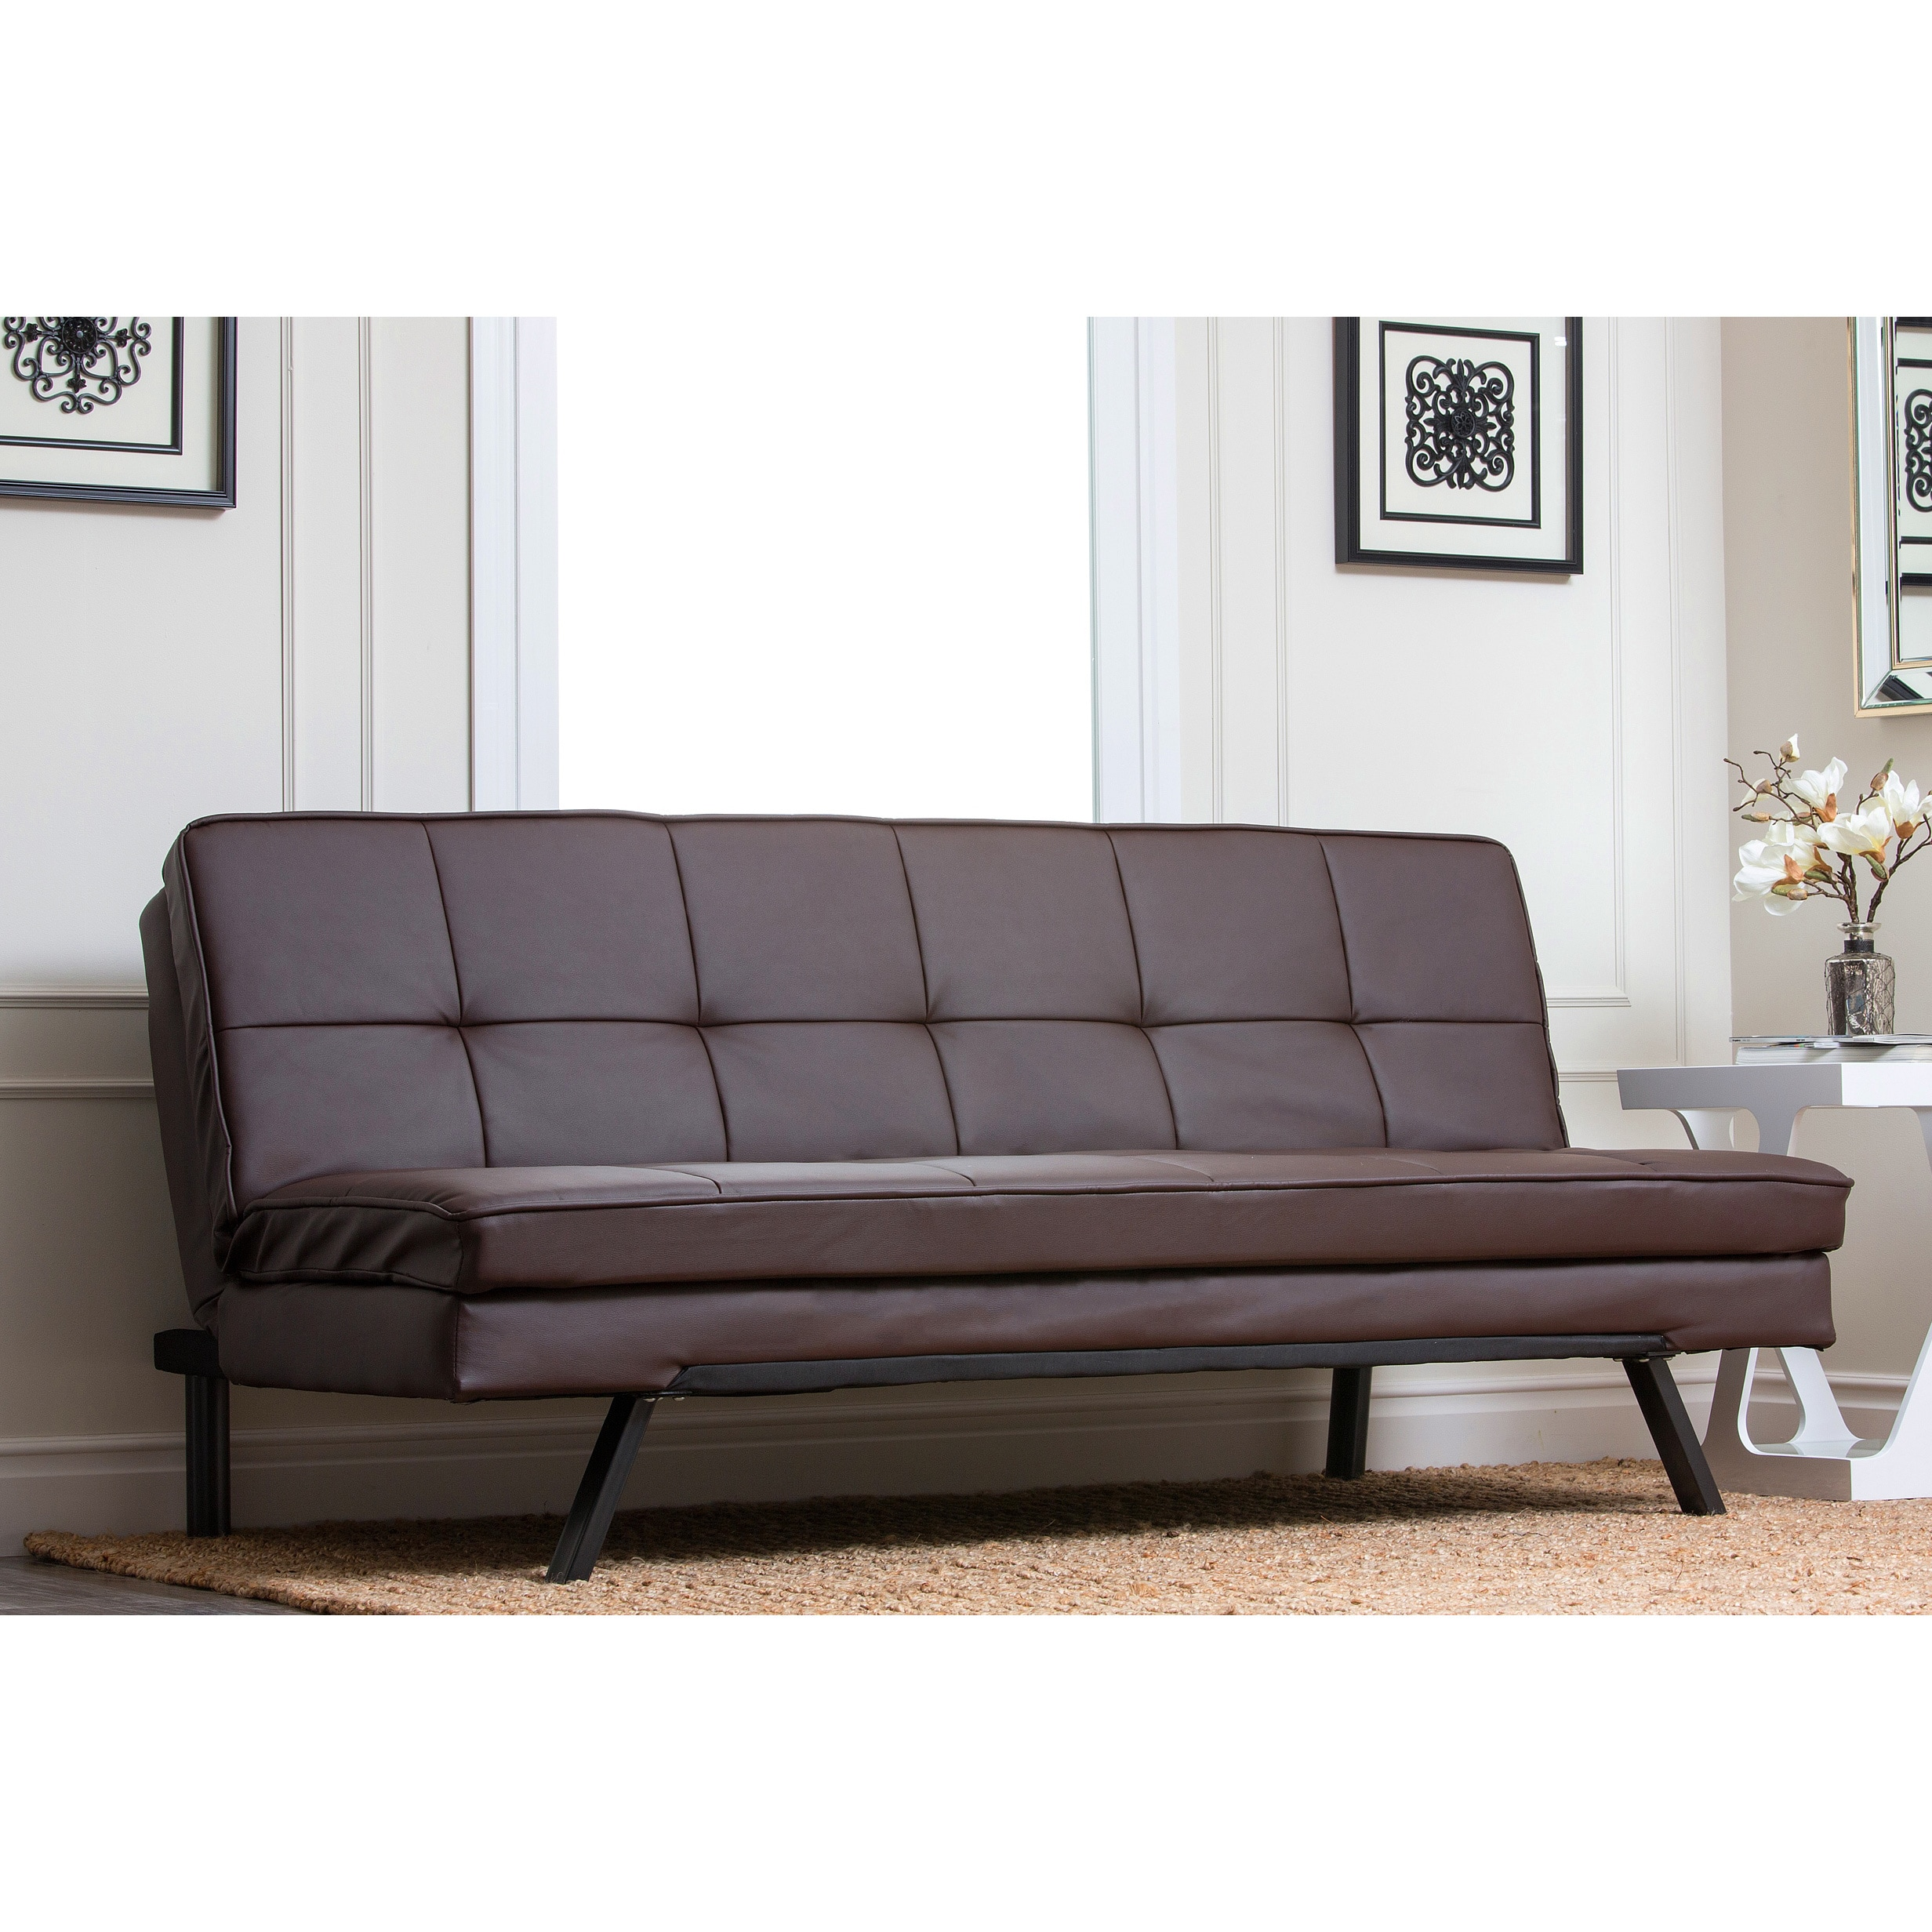 newport sofa convertible bed catnapper voyager reclining abbyson living double cushion